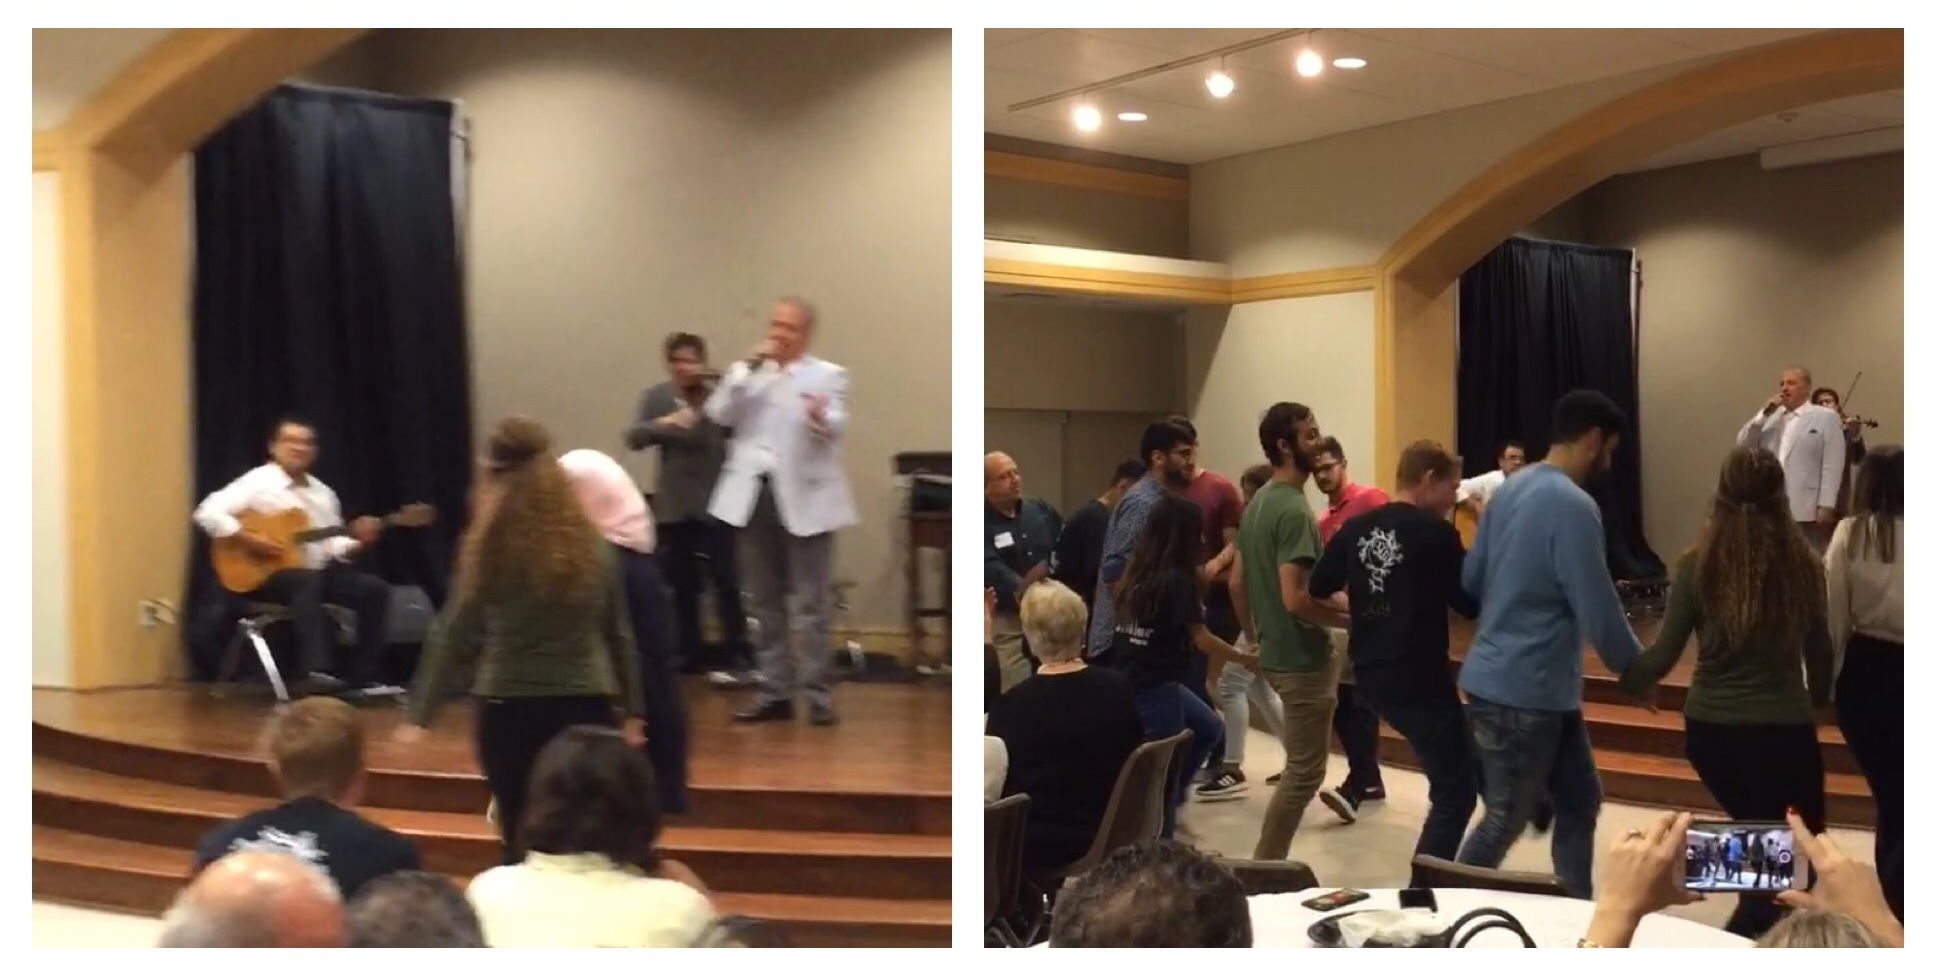 It's not a Palestinian gathering without dabke!